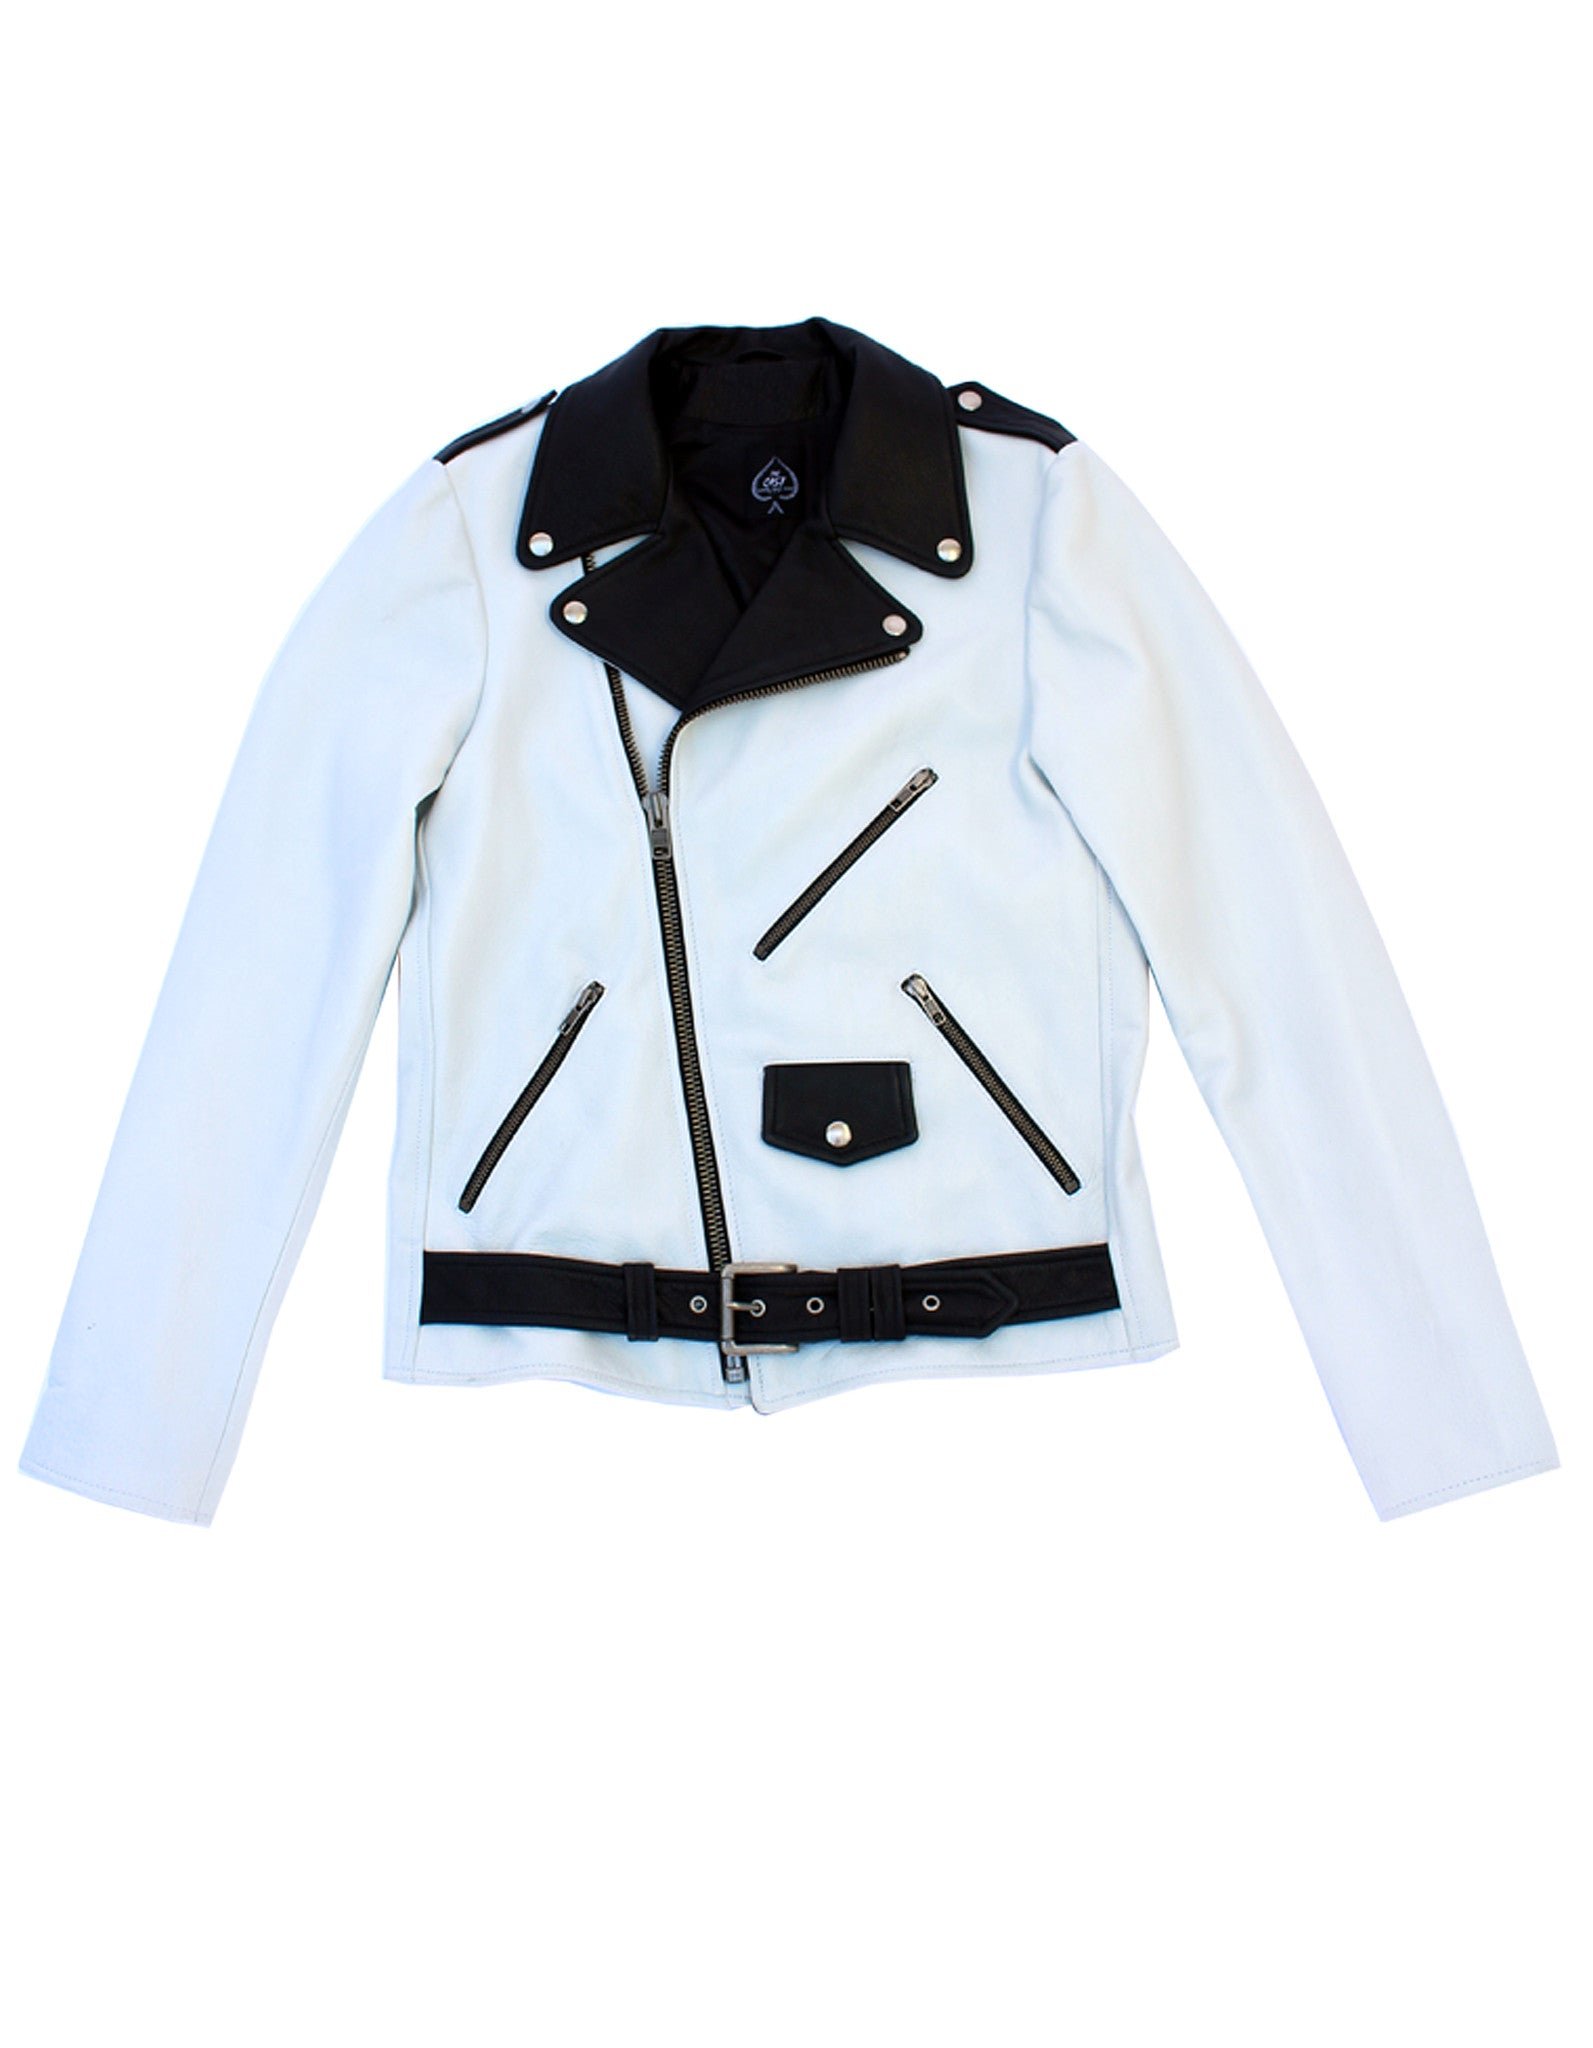 Men's Bowery Motorcycle Jacket (White & Black Combo)